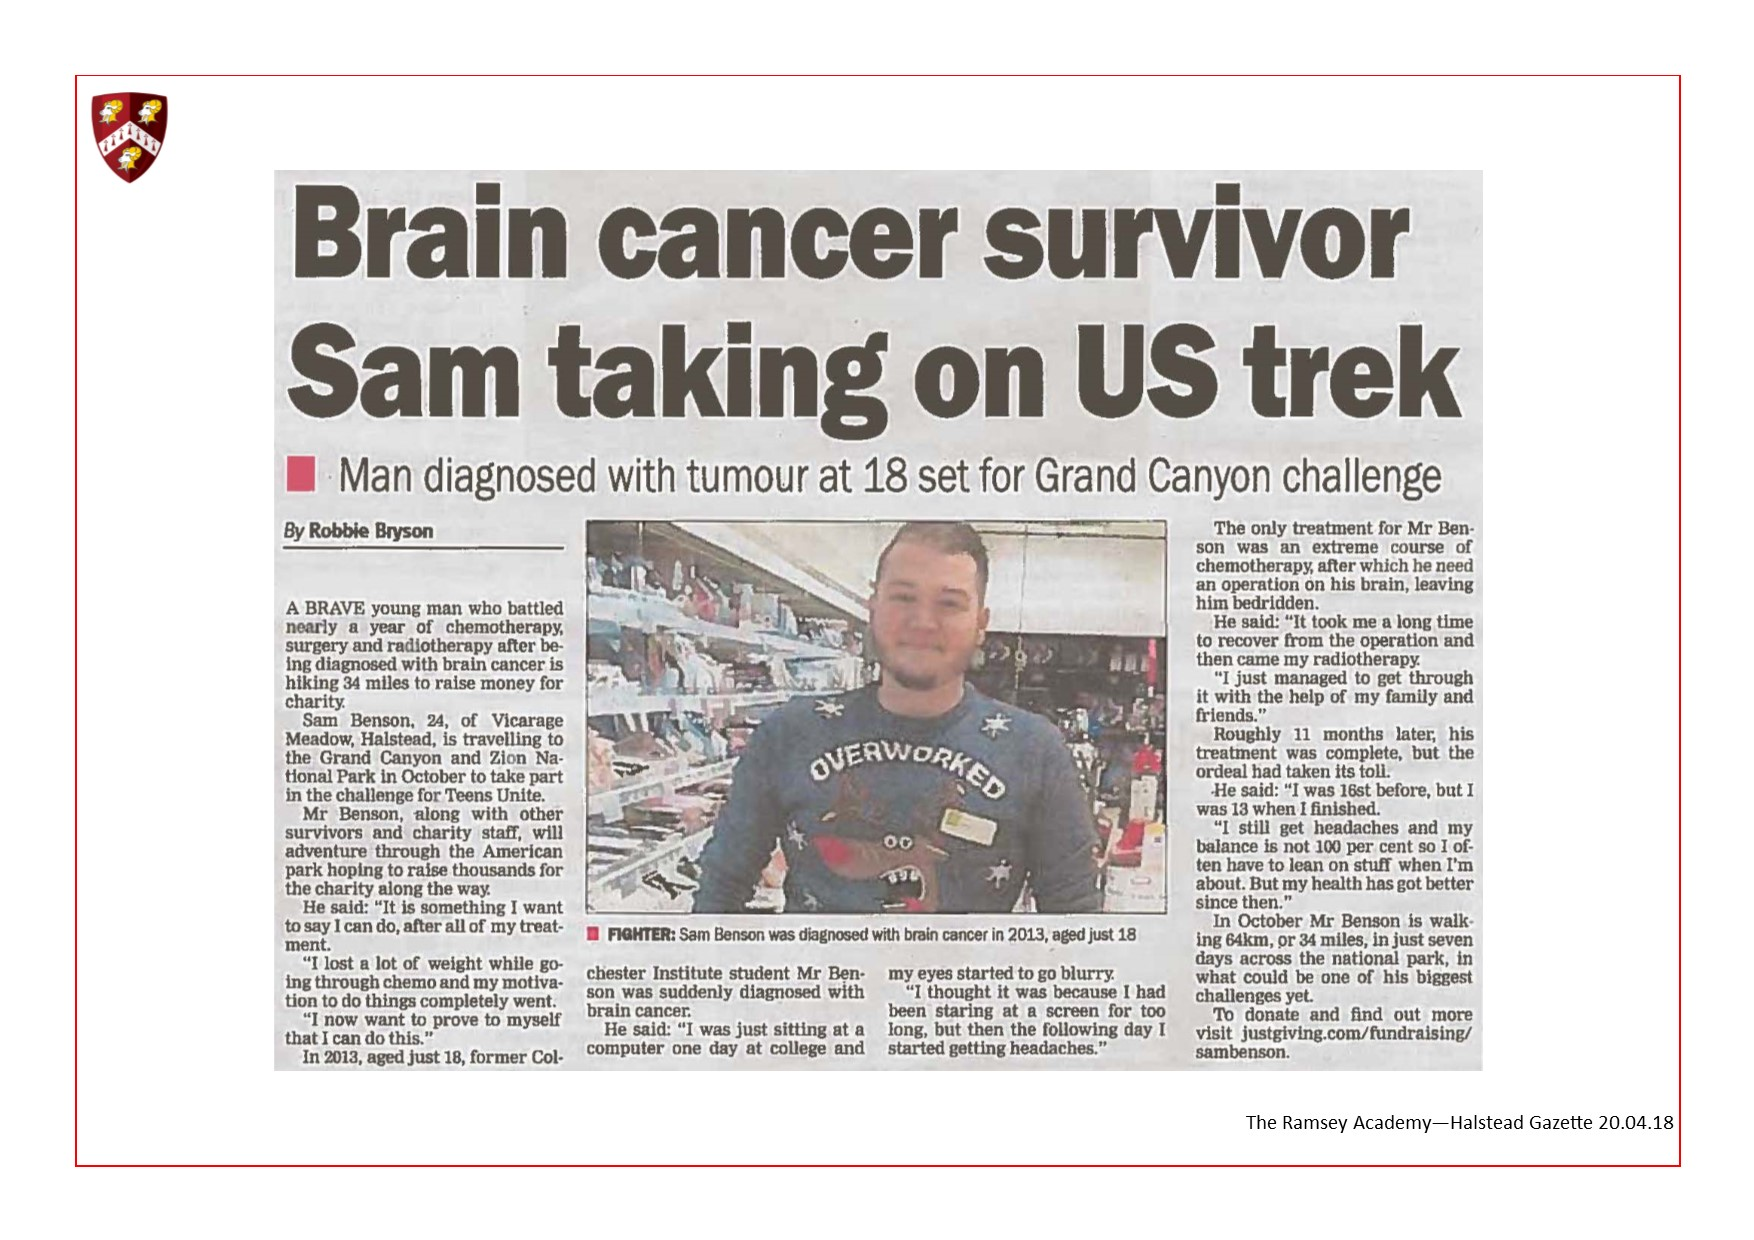 Brain CancerSurvivor Sam Taking On US Trek 20.04.18